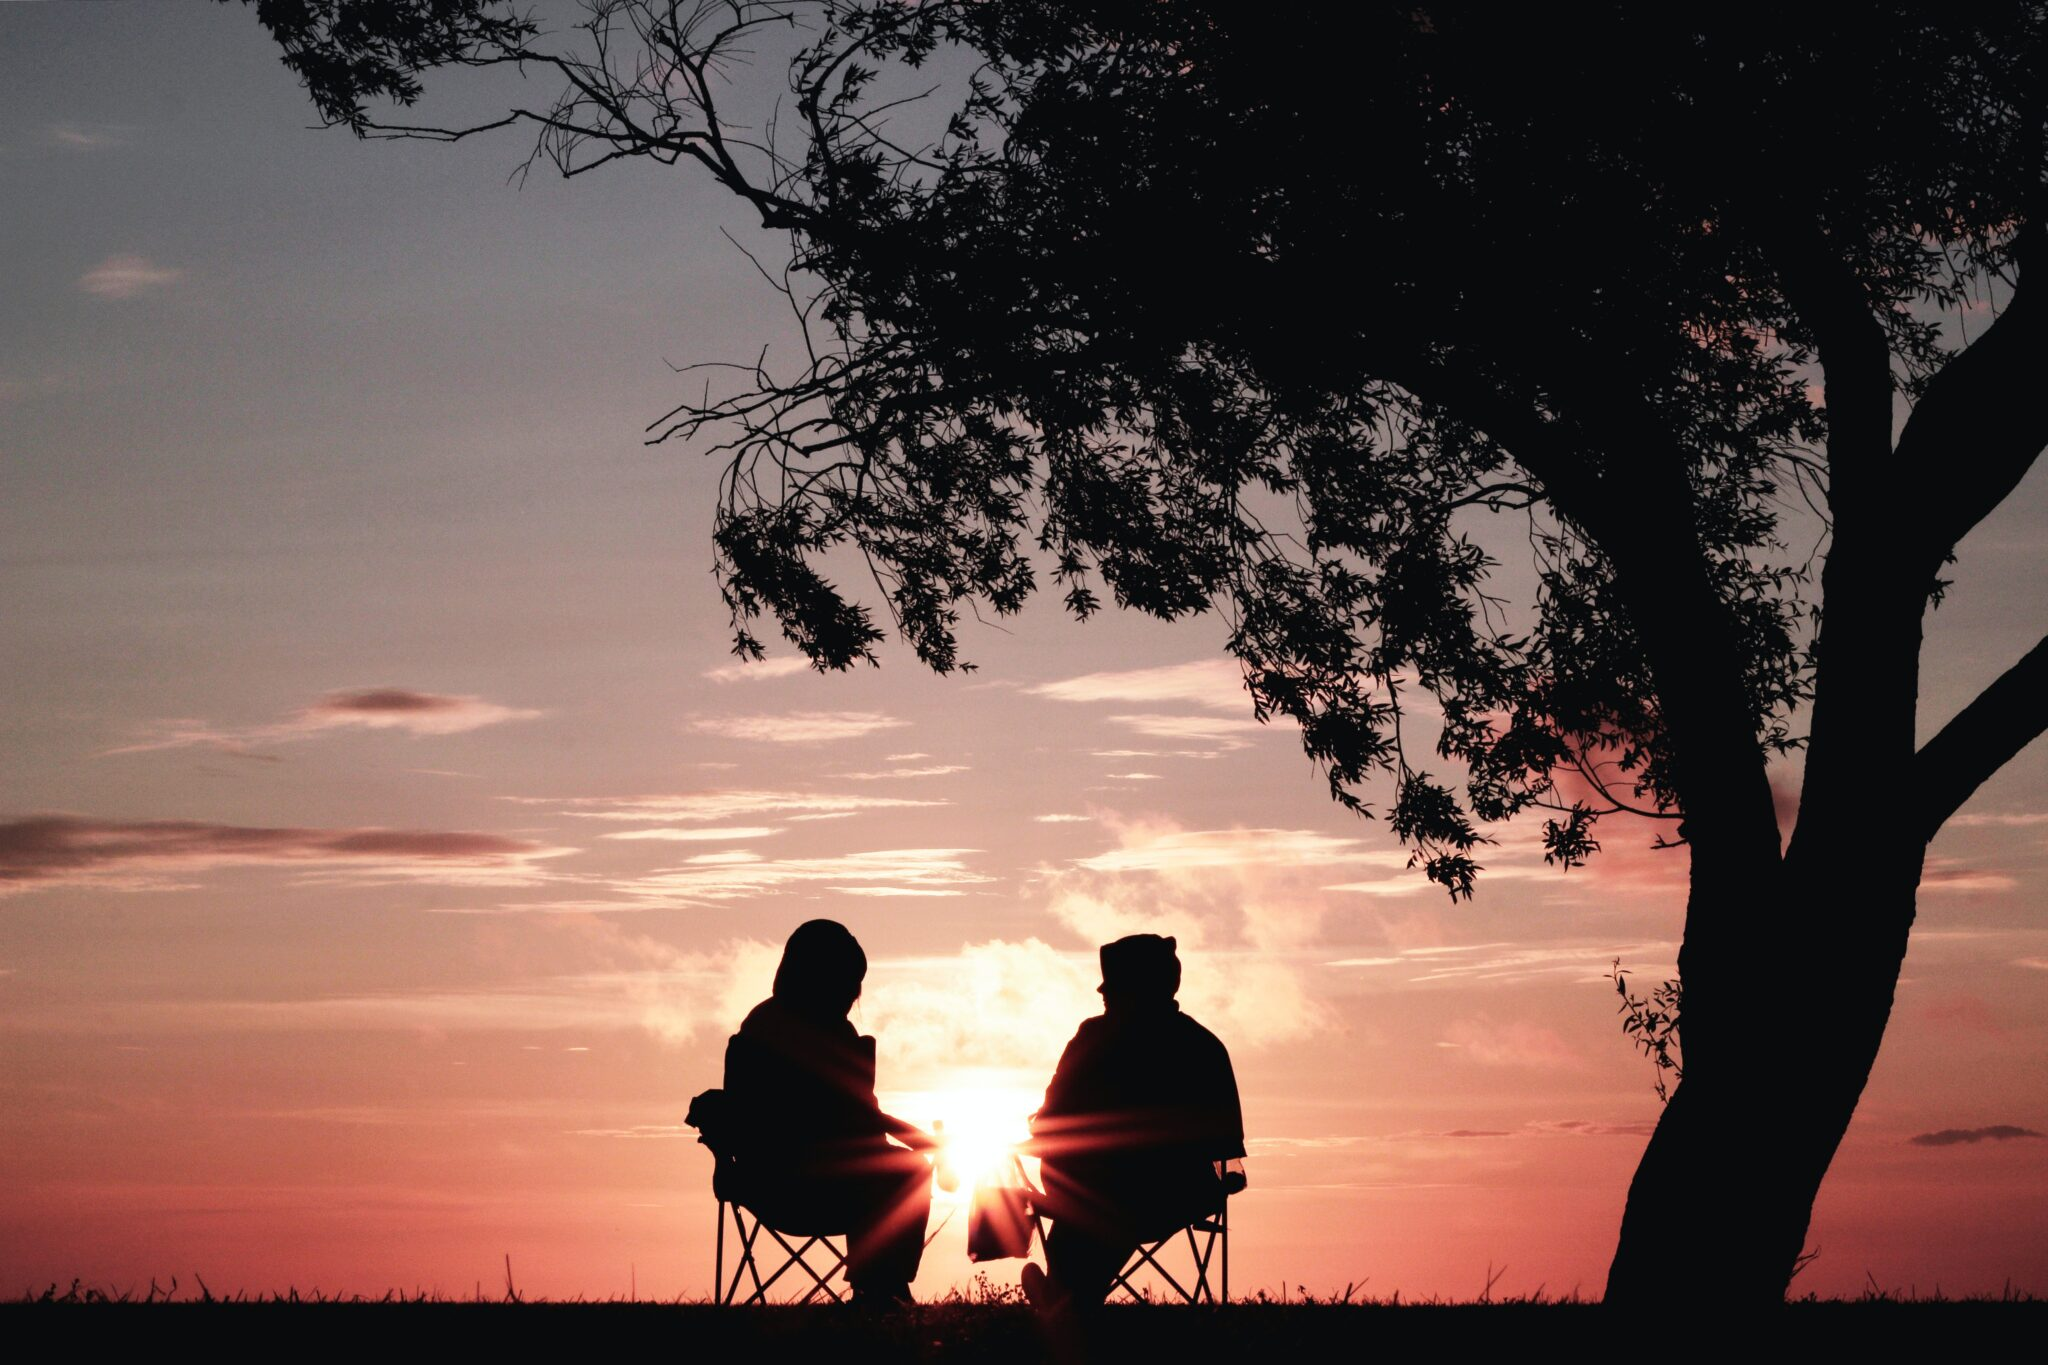 Two people sitting outside, watching the sunset